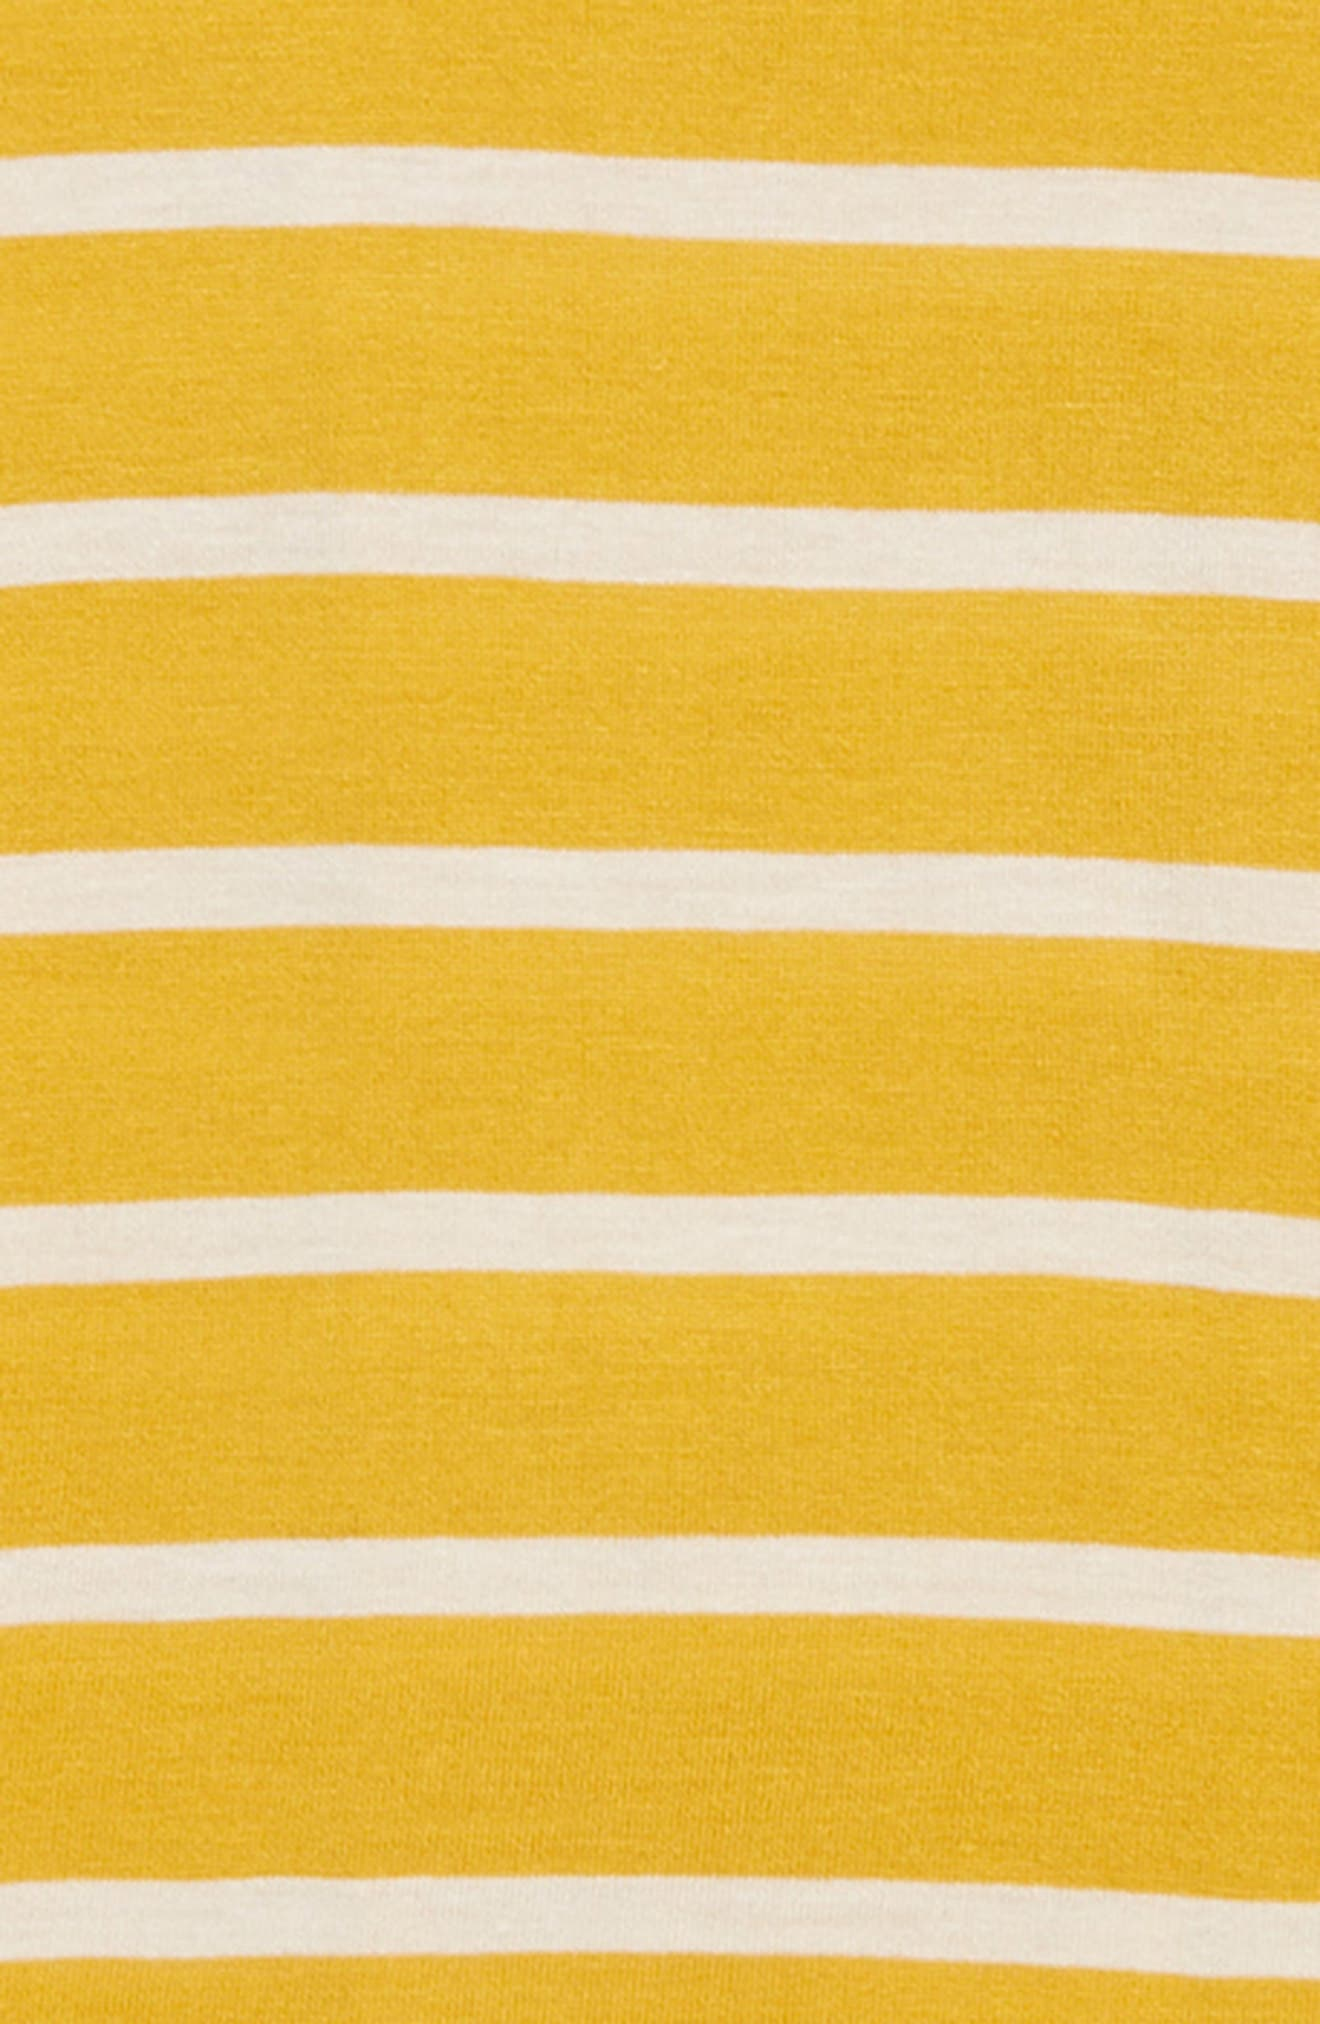 Lace-Up Back Tee,                             Alternate thumbnail 3, color,                             YELLOW MINERAL- IVORY STRIPE